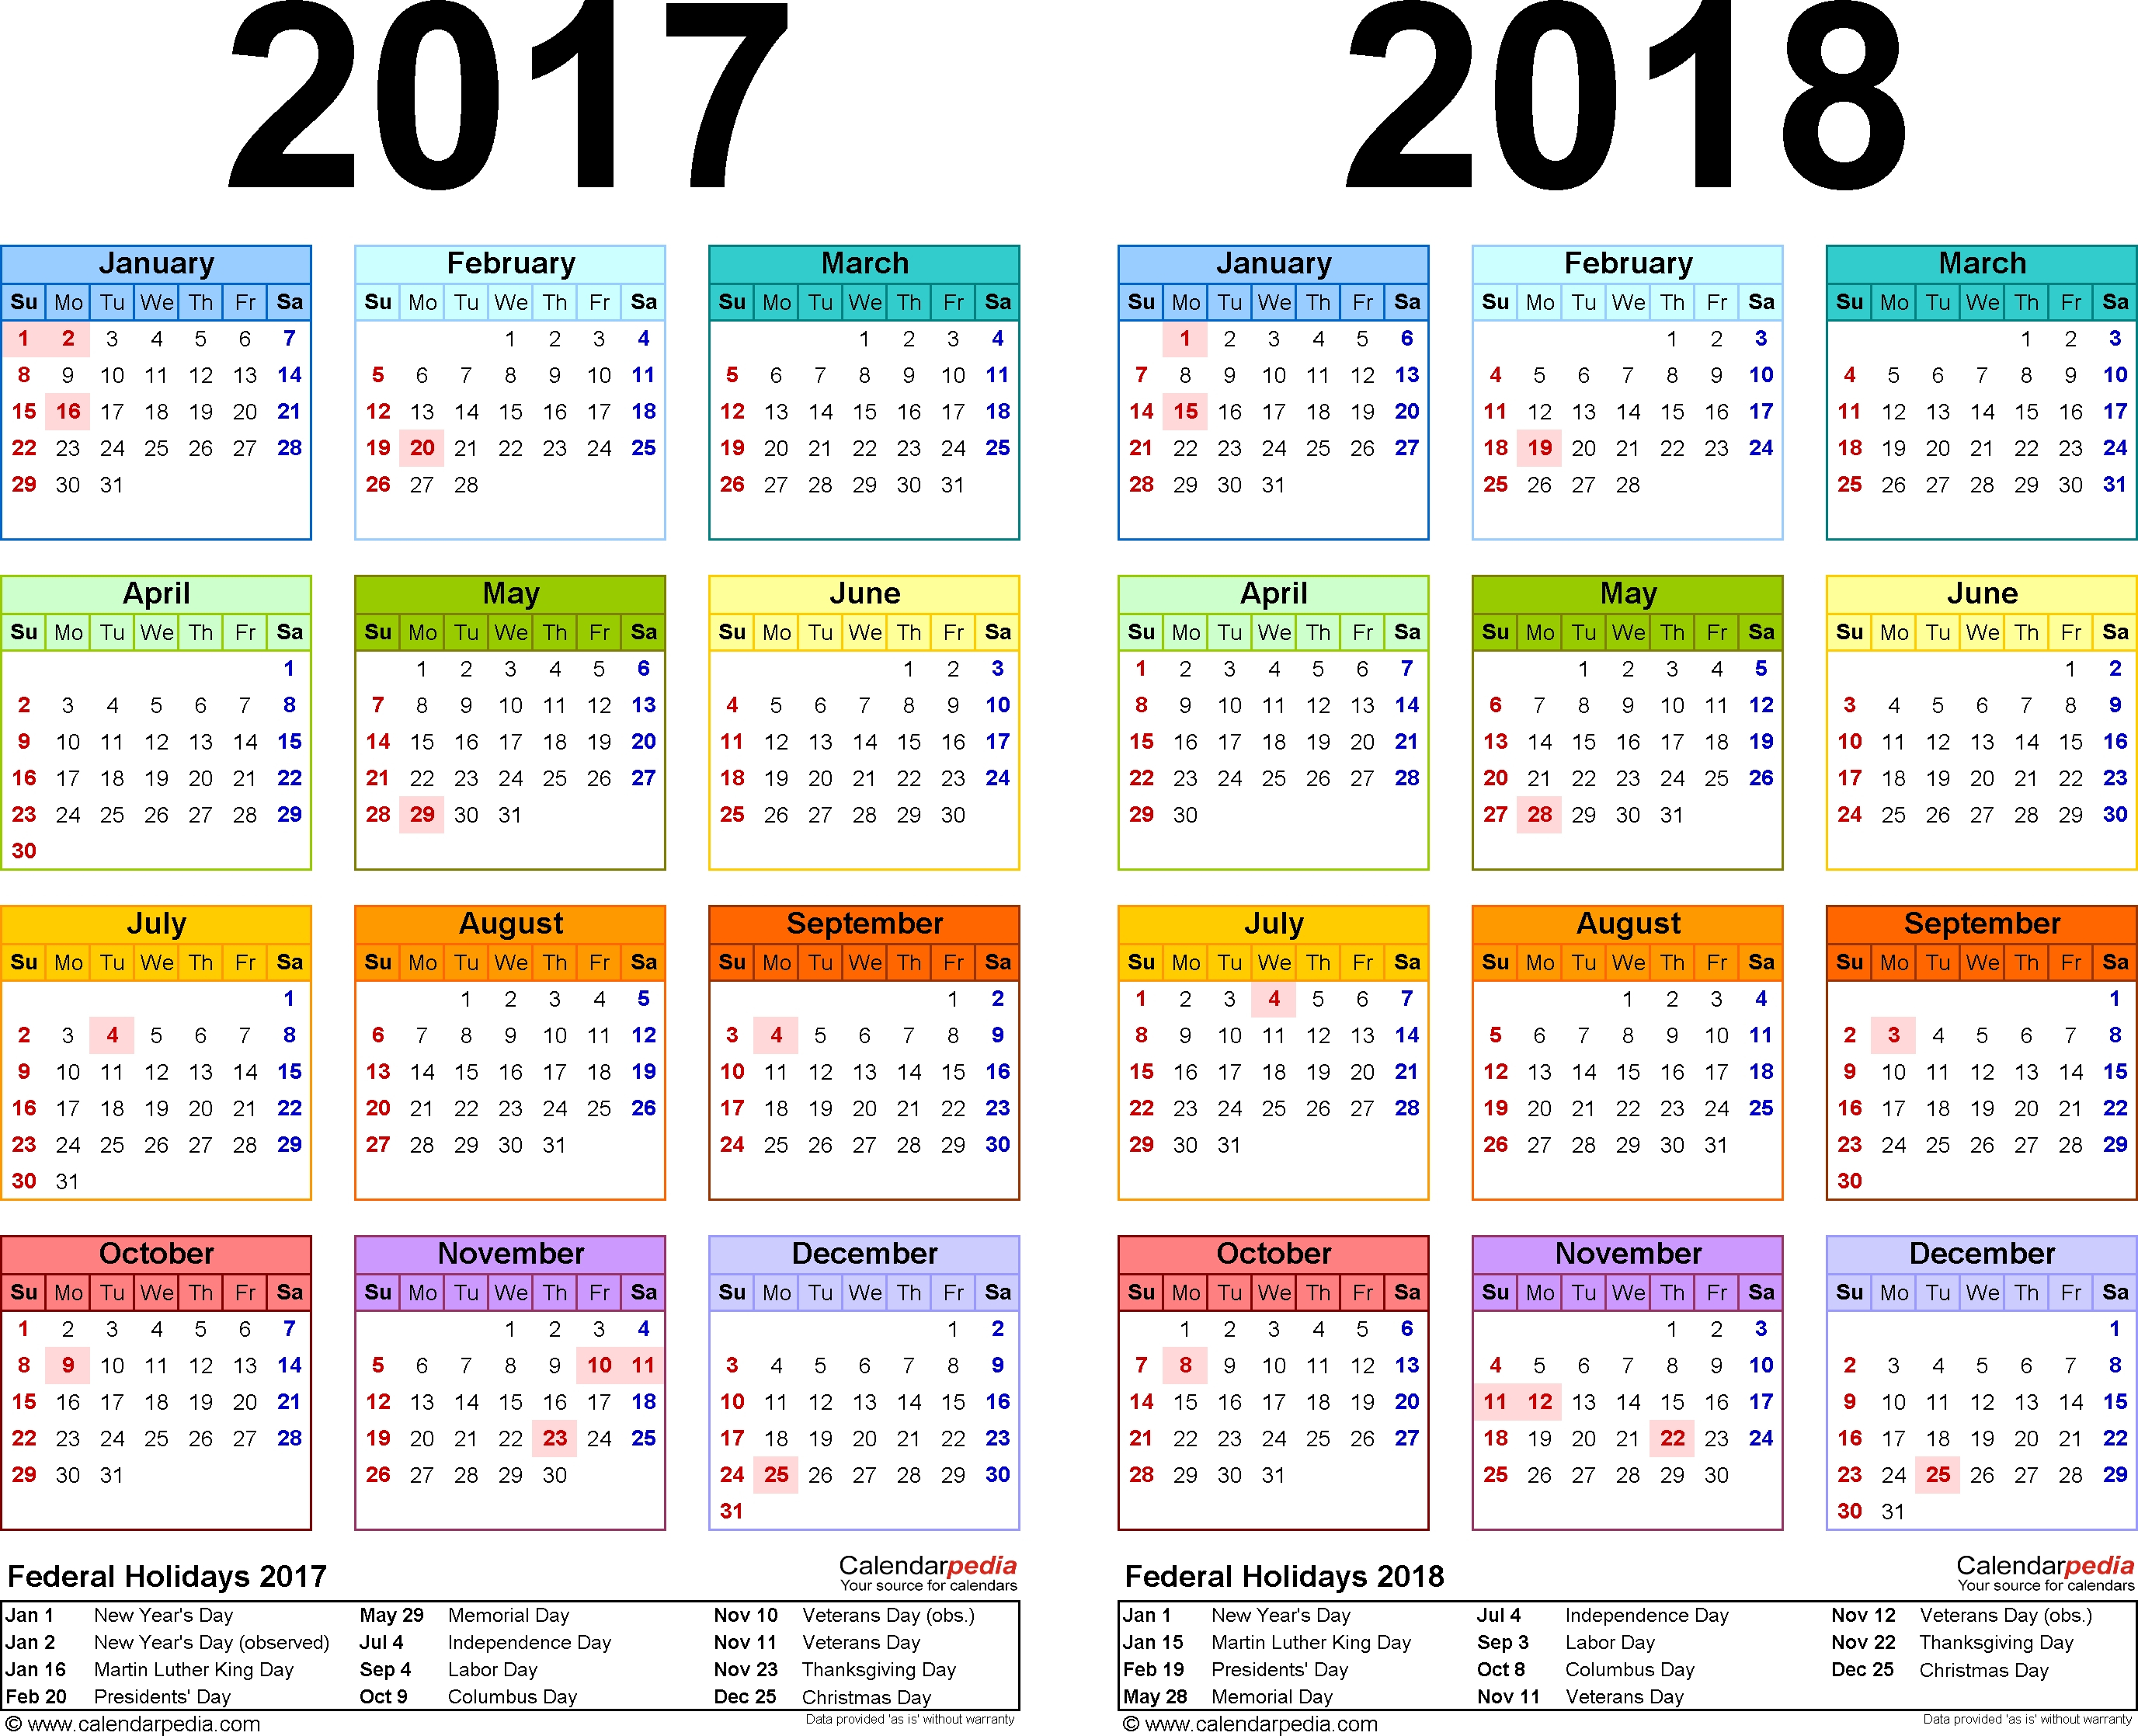 Calendar Yearly Monthly Weekly Daily Example in Lala Ramswaroop Calendar 2020